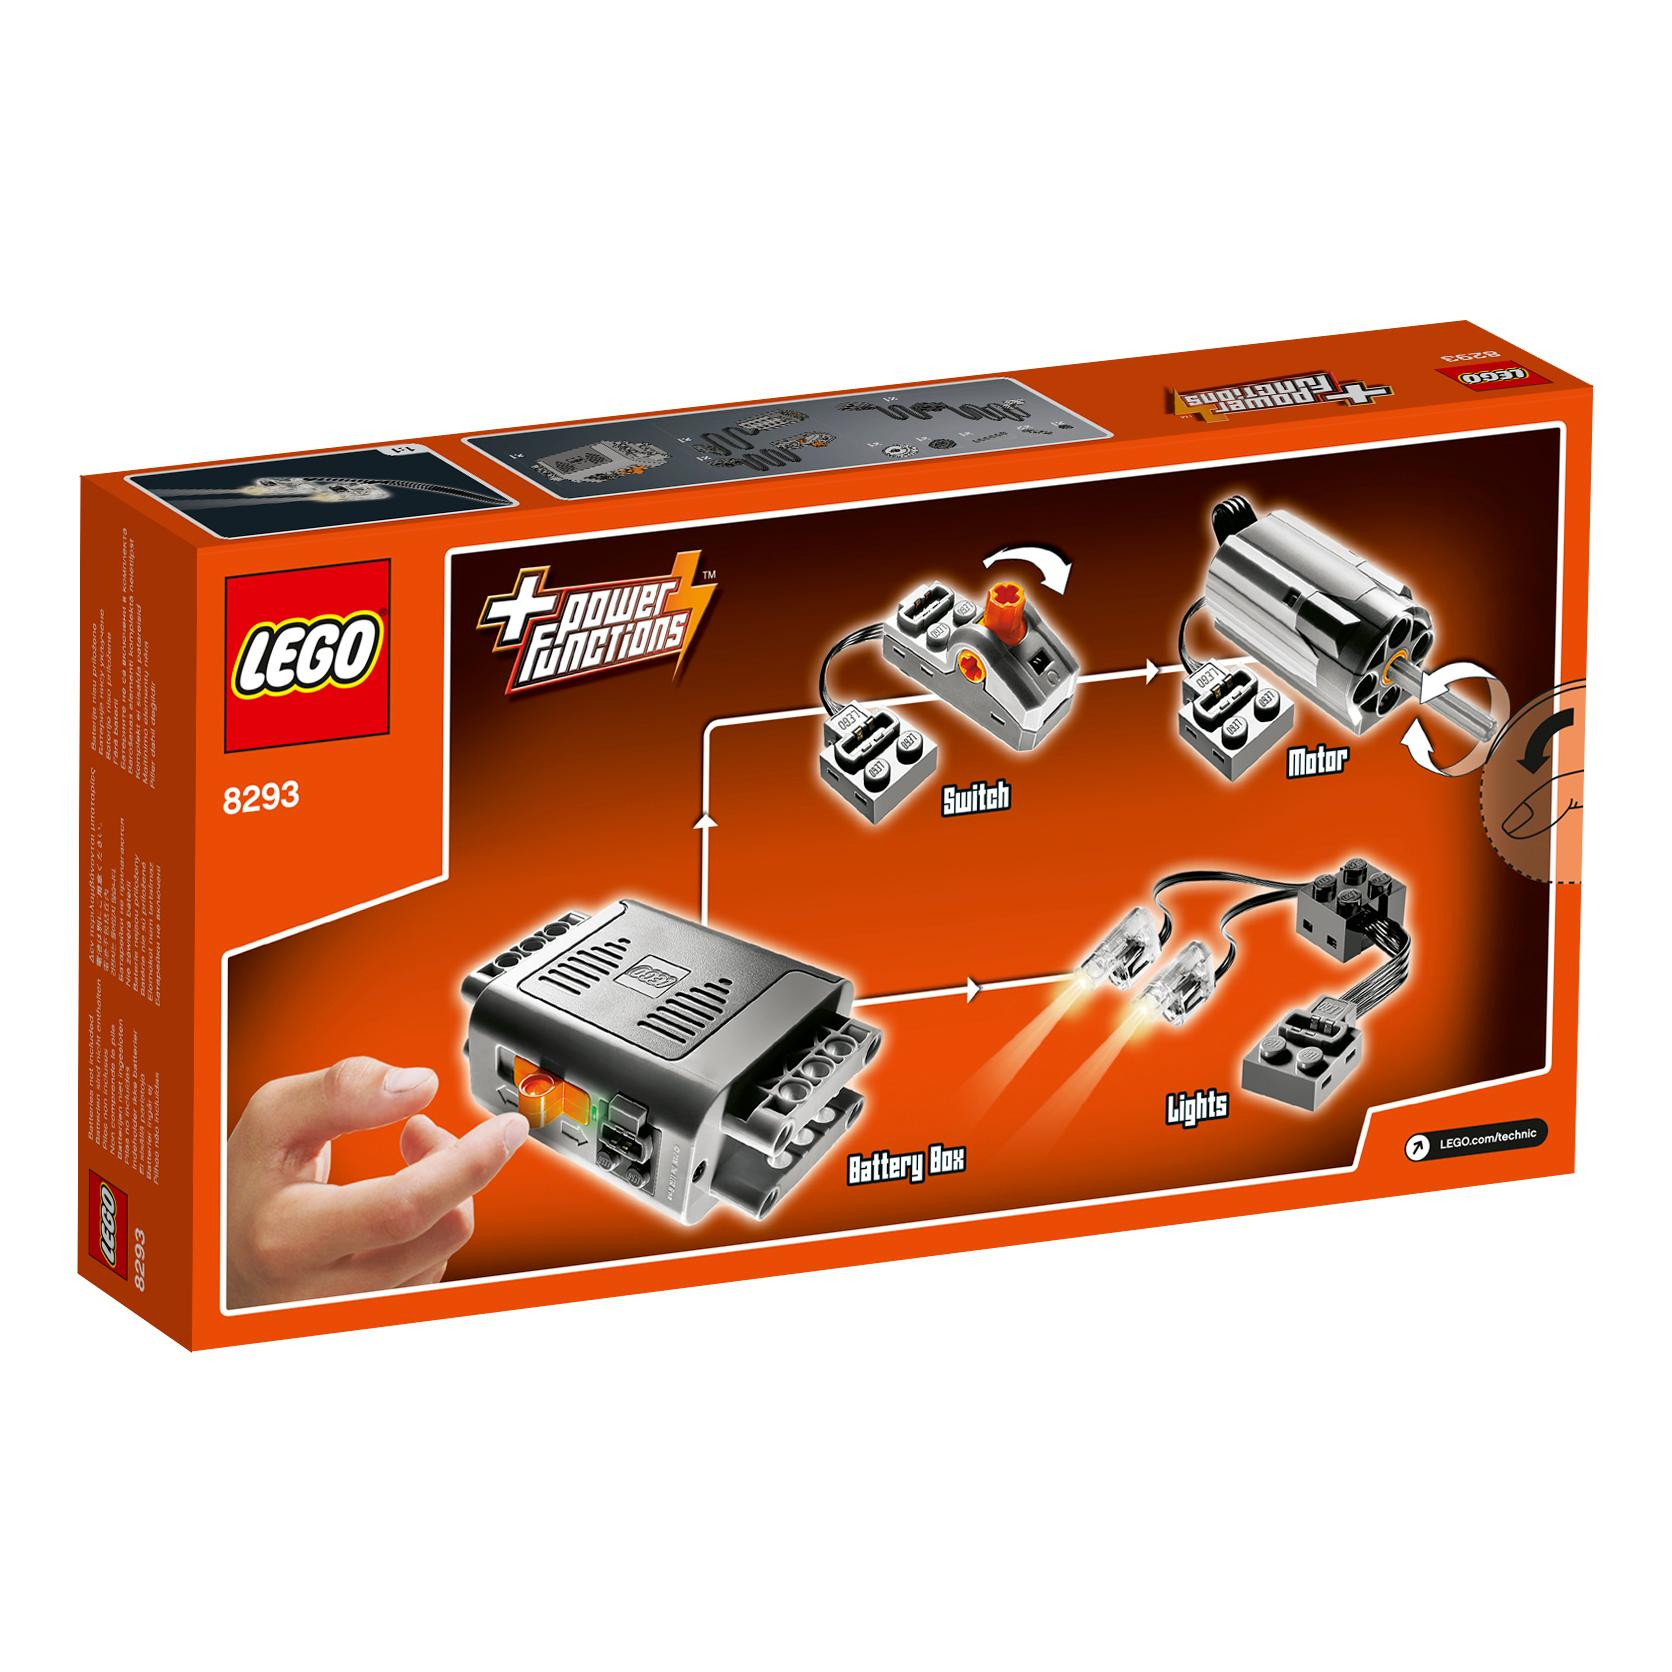 lego technic power functions motor set 8293 storage accessories amazon canada. Black Bedroom Furniture Sets. Home Design Ideas